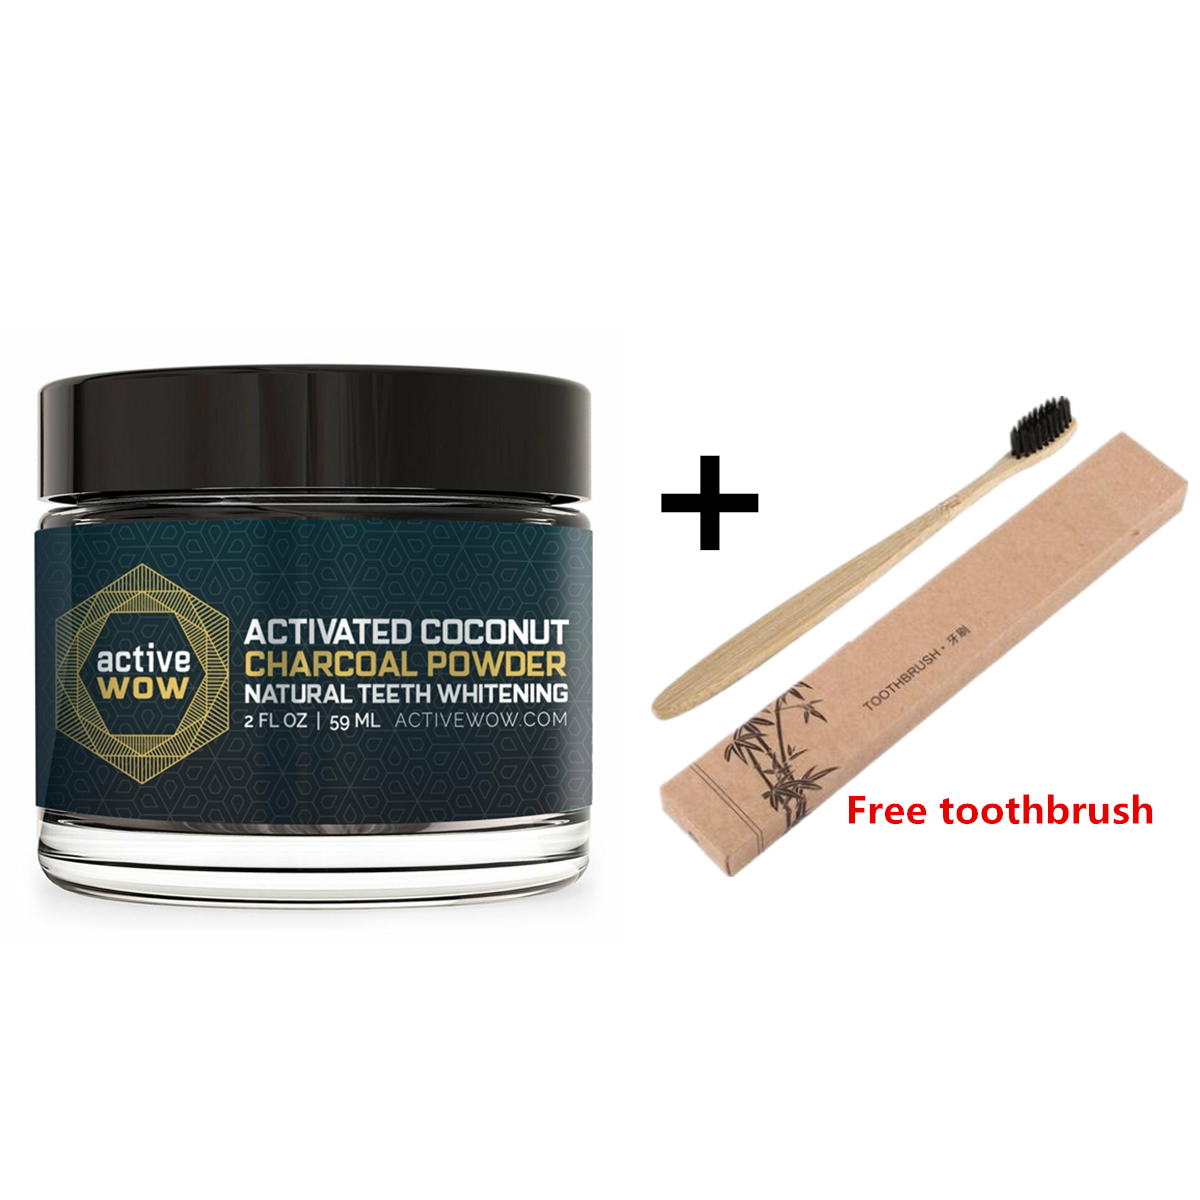 Active Wow Teeth Whitening - Activated Charcoal Powder -